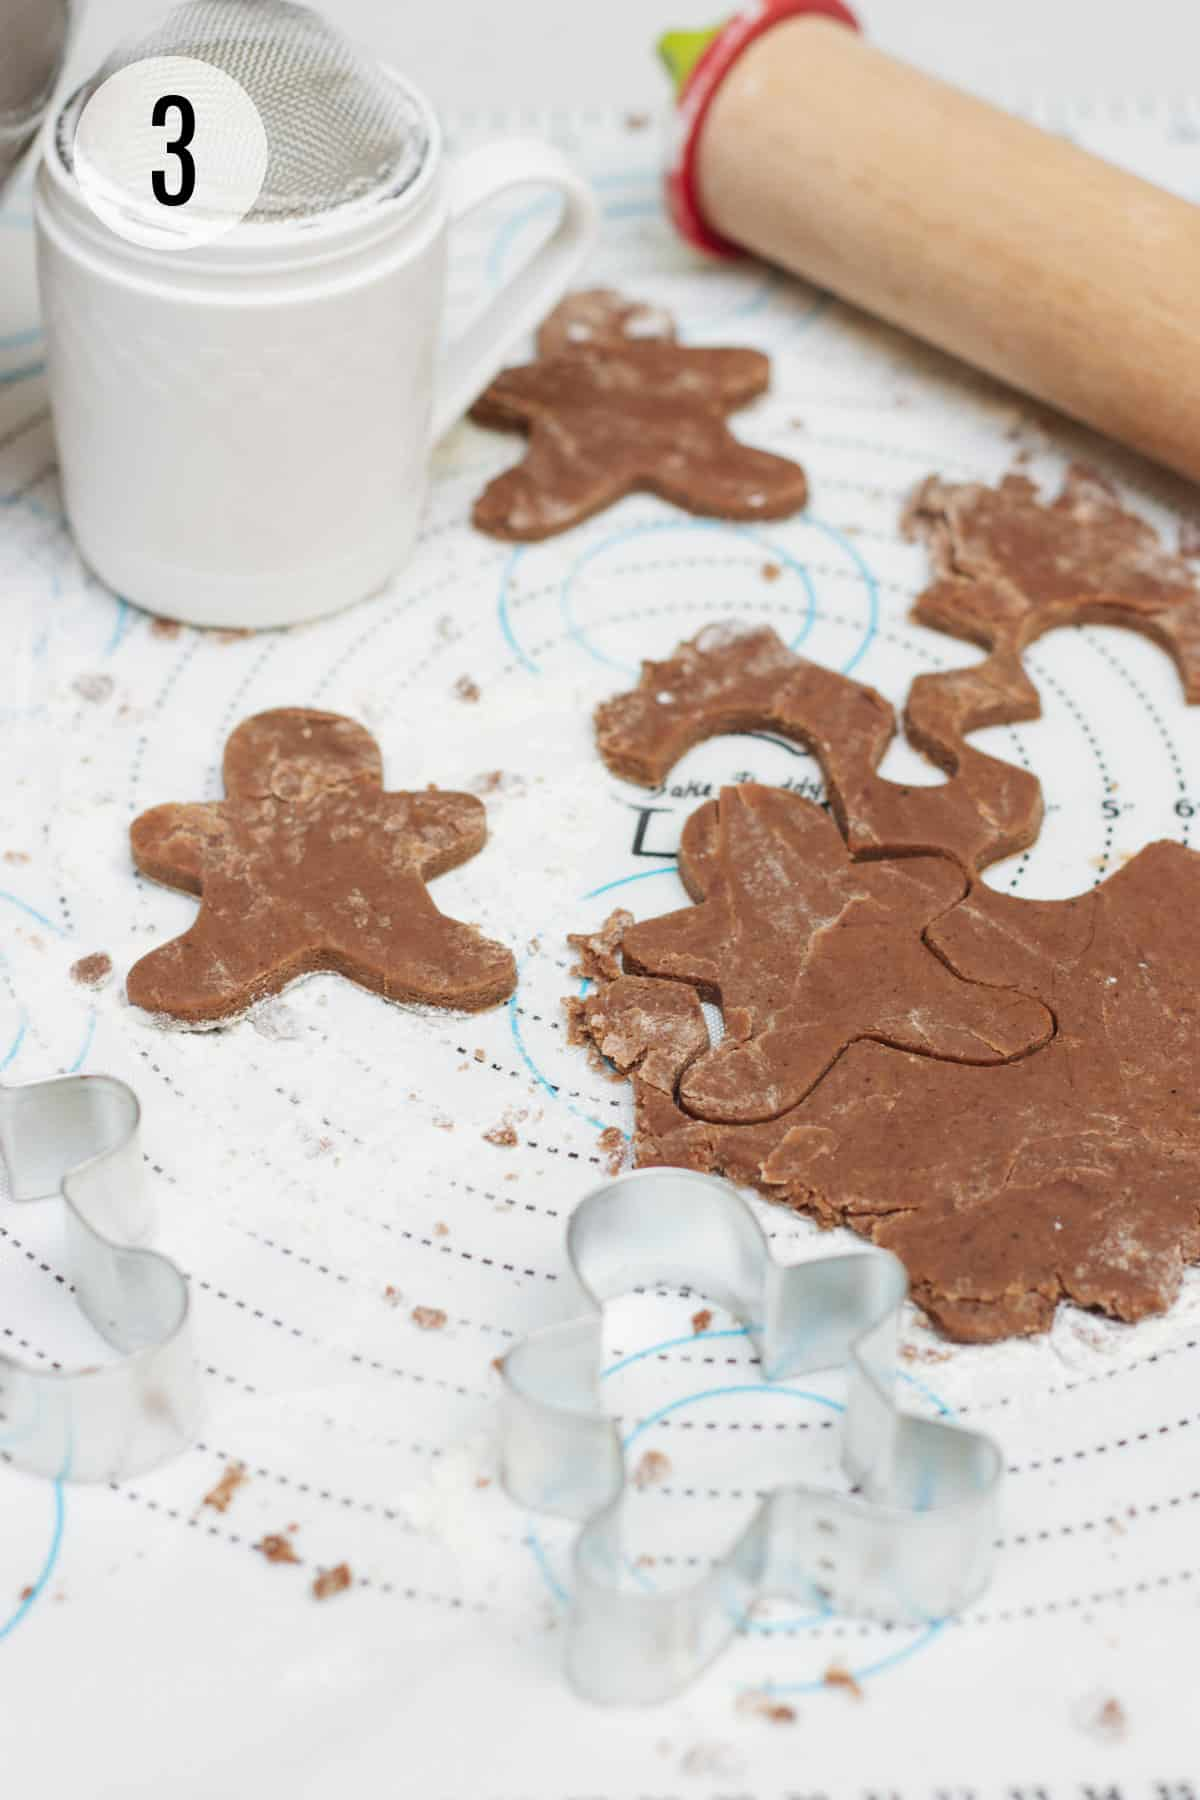 Mexican chocolate cut out sugar cookie dough on a baking mat cut into gingerbread man shape with flour/powdered sugar sifter and wooden rolling pin in upper background and metal cookie cutter in foreground.